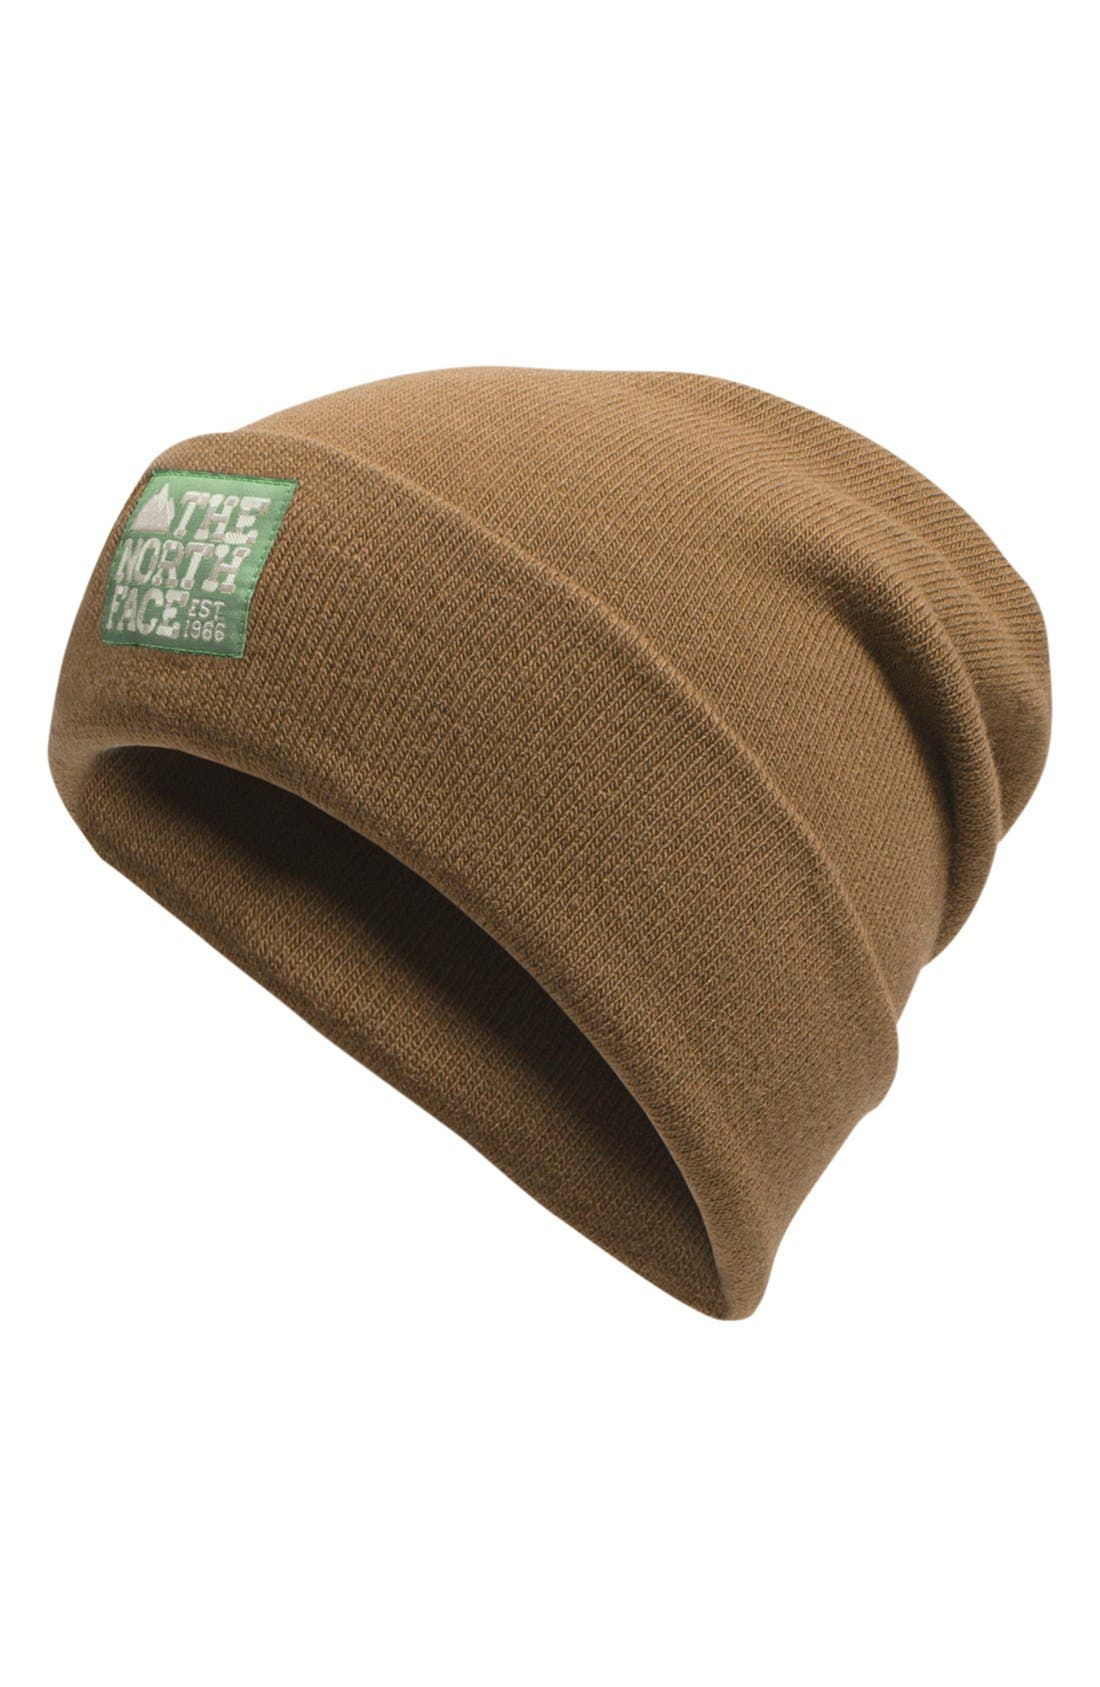 Main Image - The North Face 'Dock Worker' Beanie